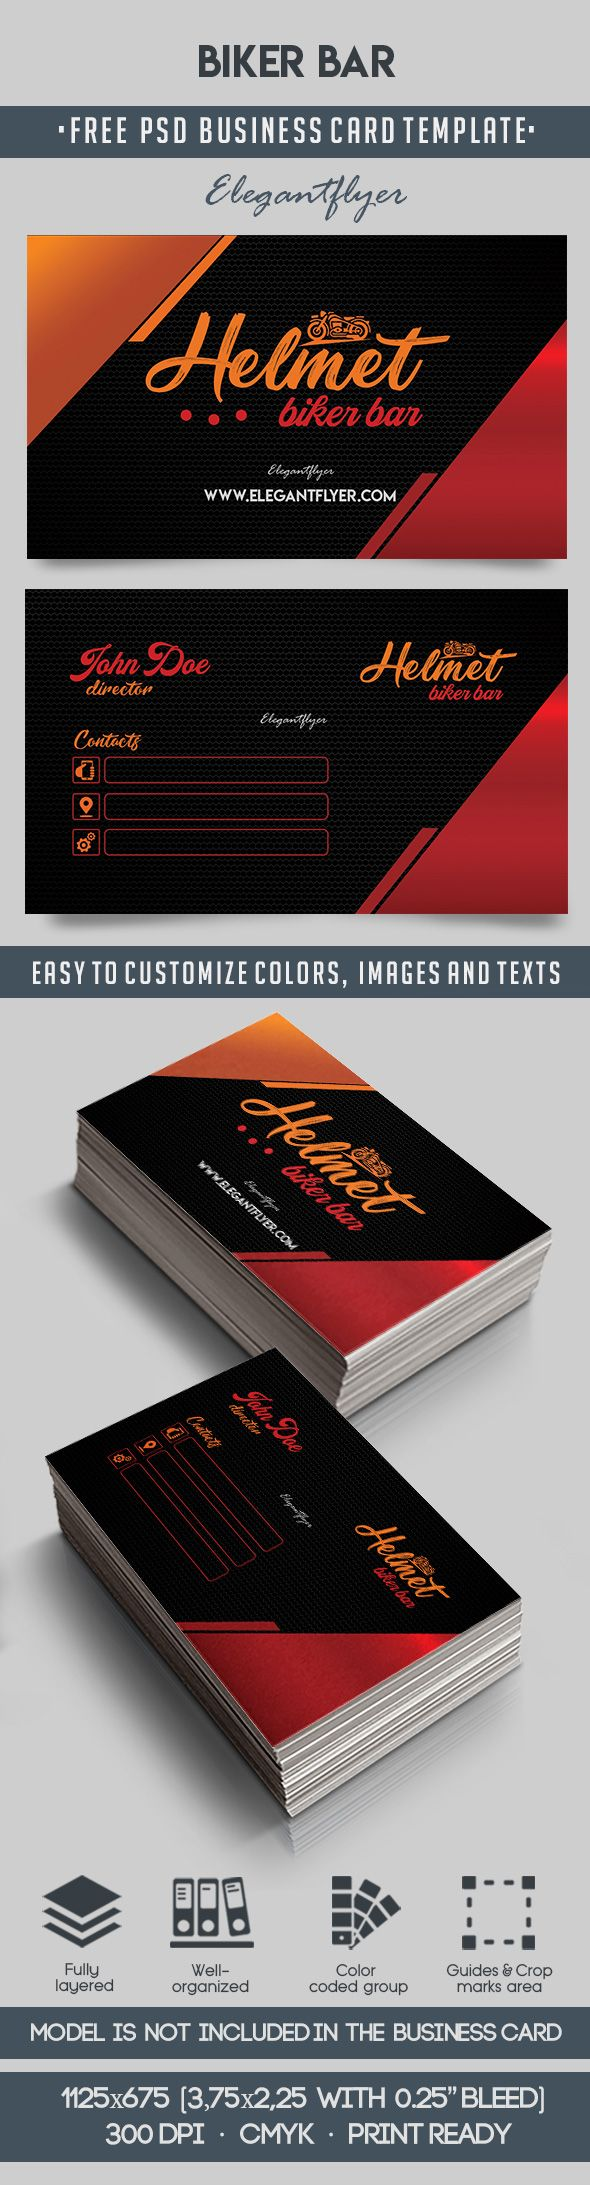 Biker bar free business card templates psd by elegantflyer biker bar free business card templates psd reheart Image collections